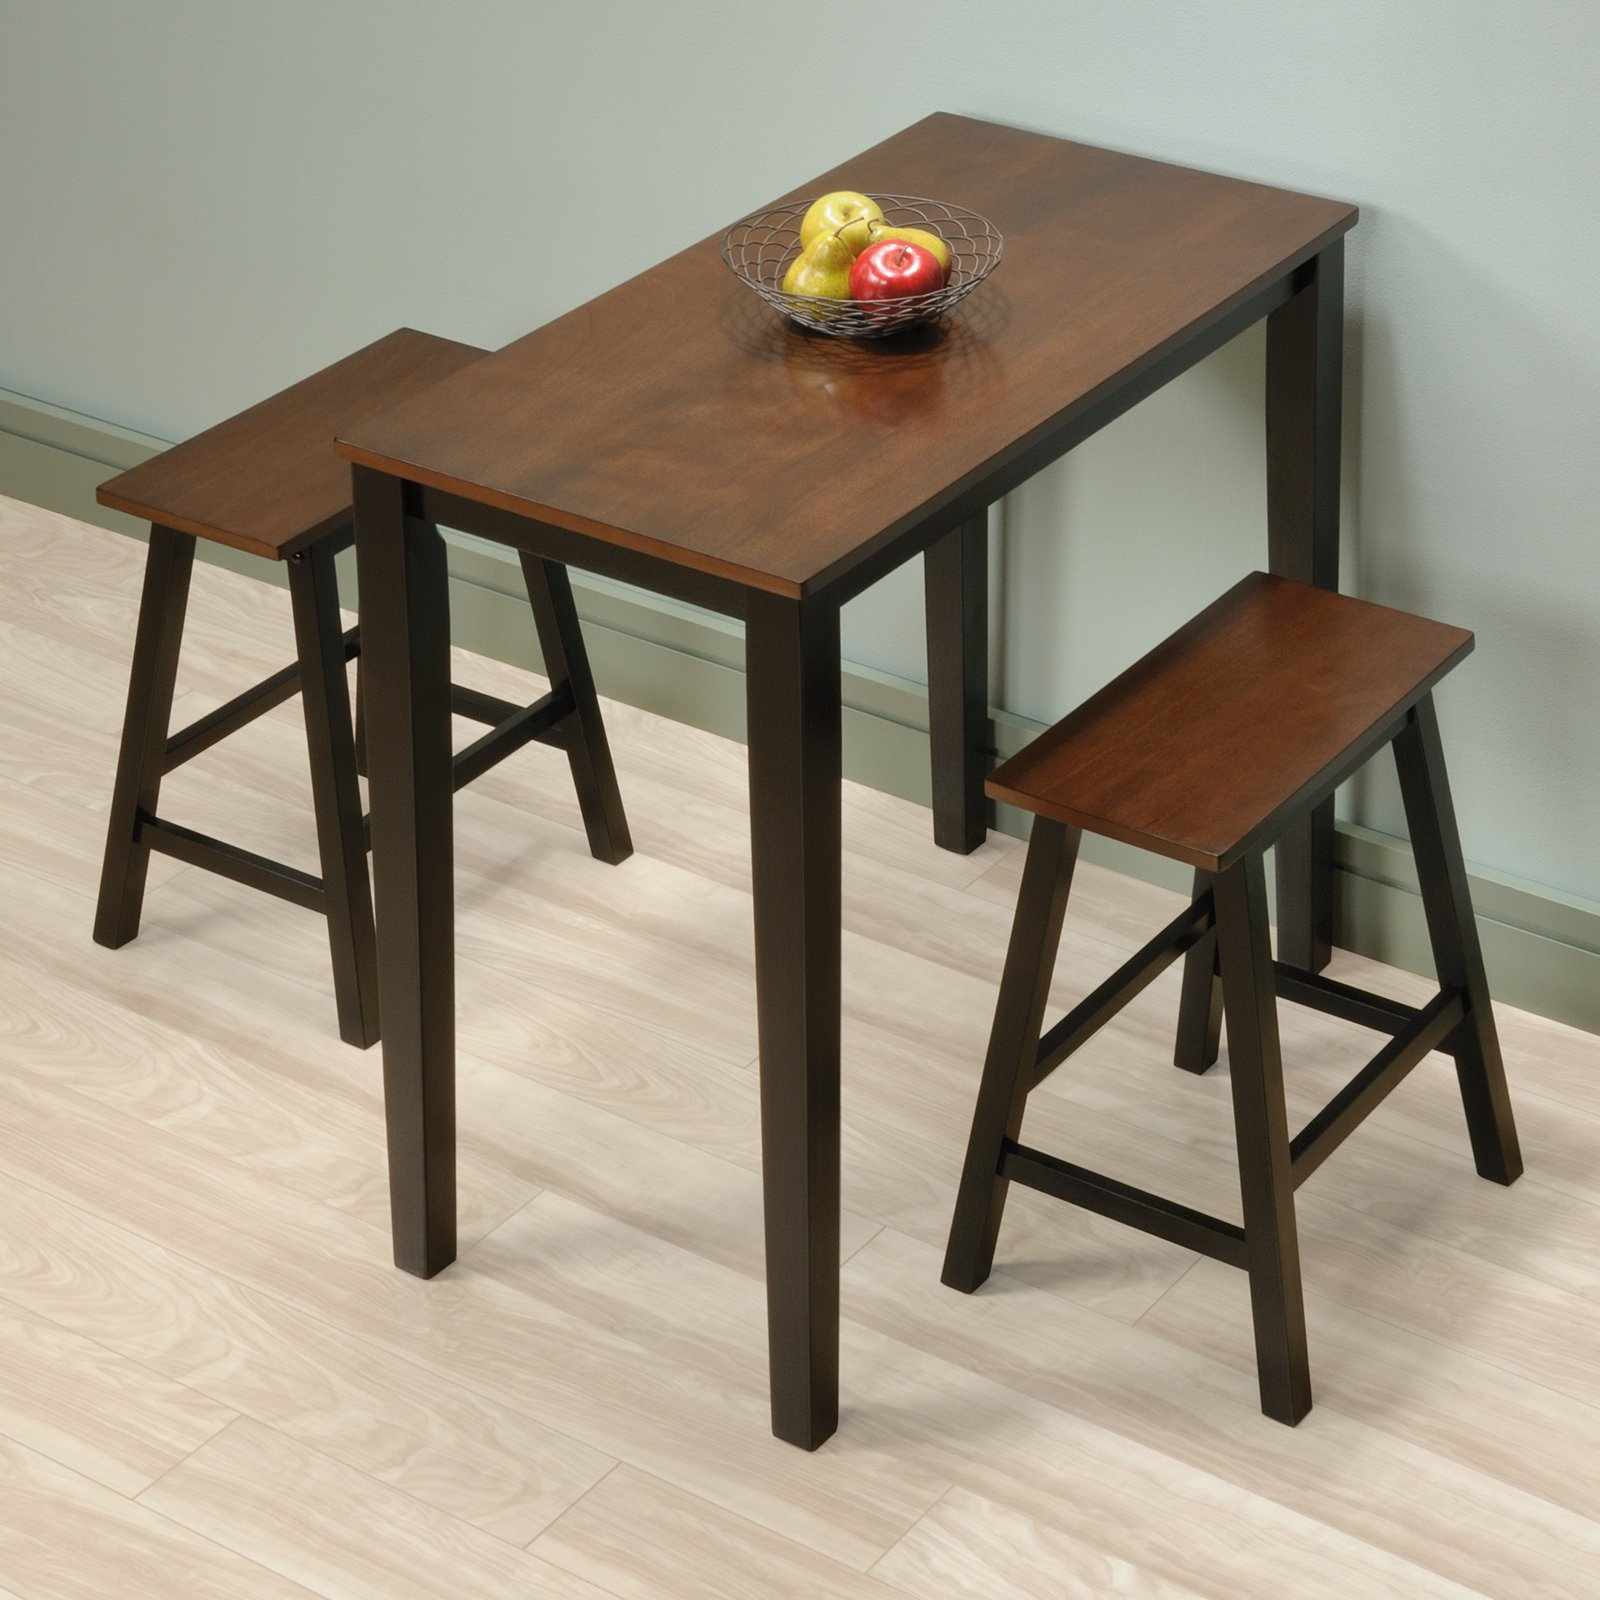 Most Recent 3 Piece Dining Sets Intended For Sauder Beginnings 3 Piece Counter Height Dining Set, Cherry Finish (View 11 of 20)